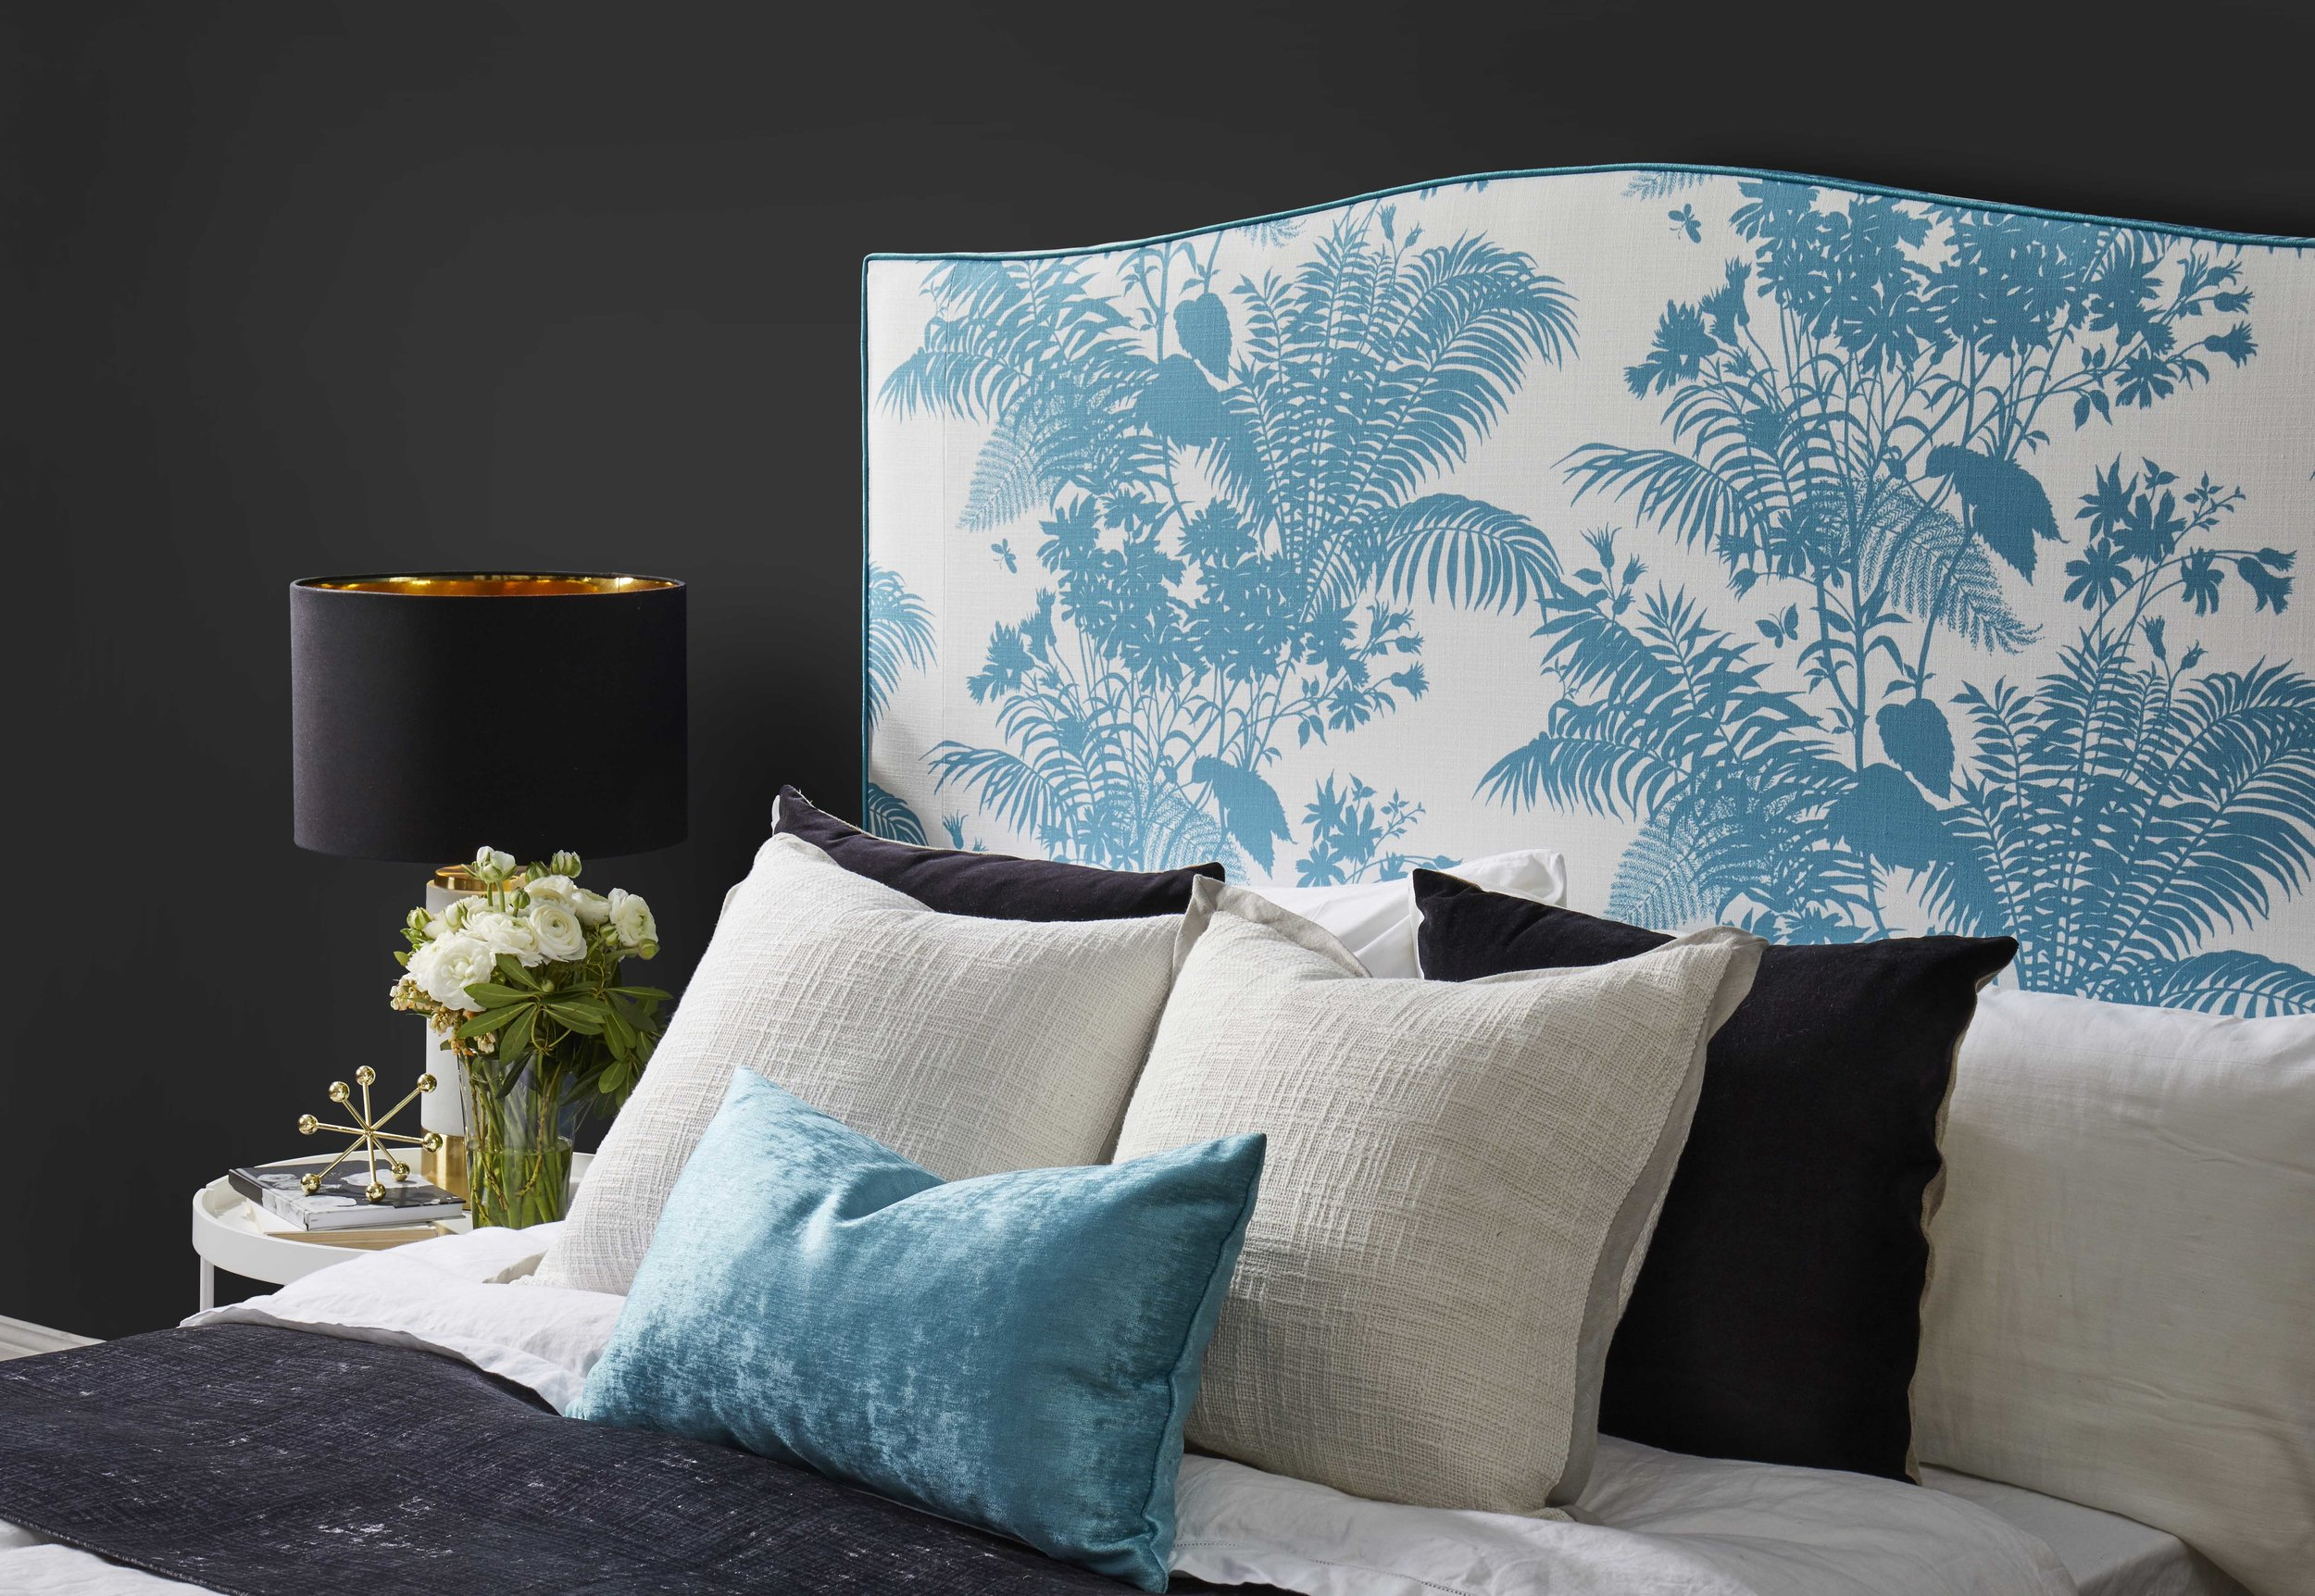 3. BEDROOM2-Materialised-Heatherly-Design-Florence-Broadhurst-Shadow-Floral(2).jpg